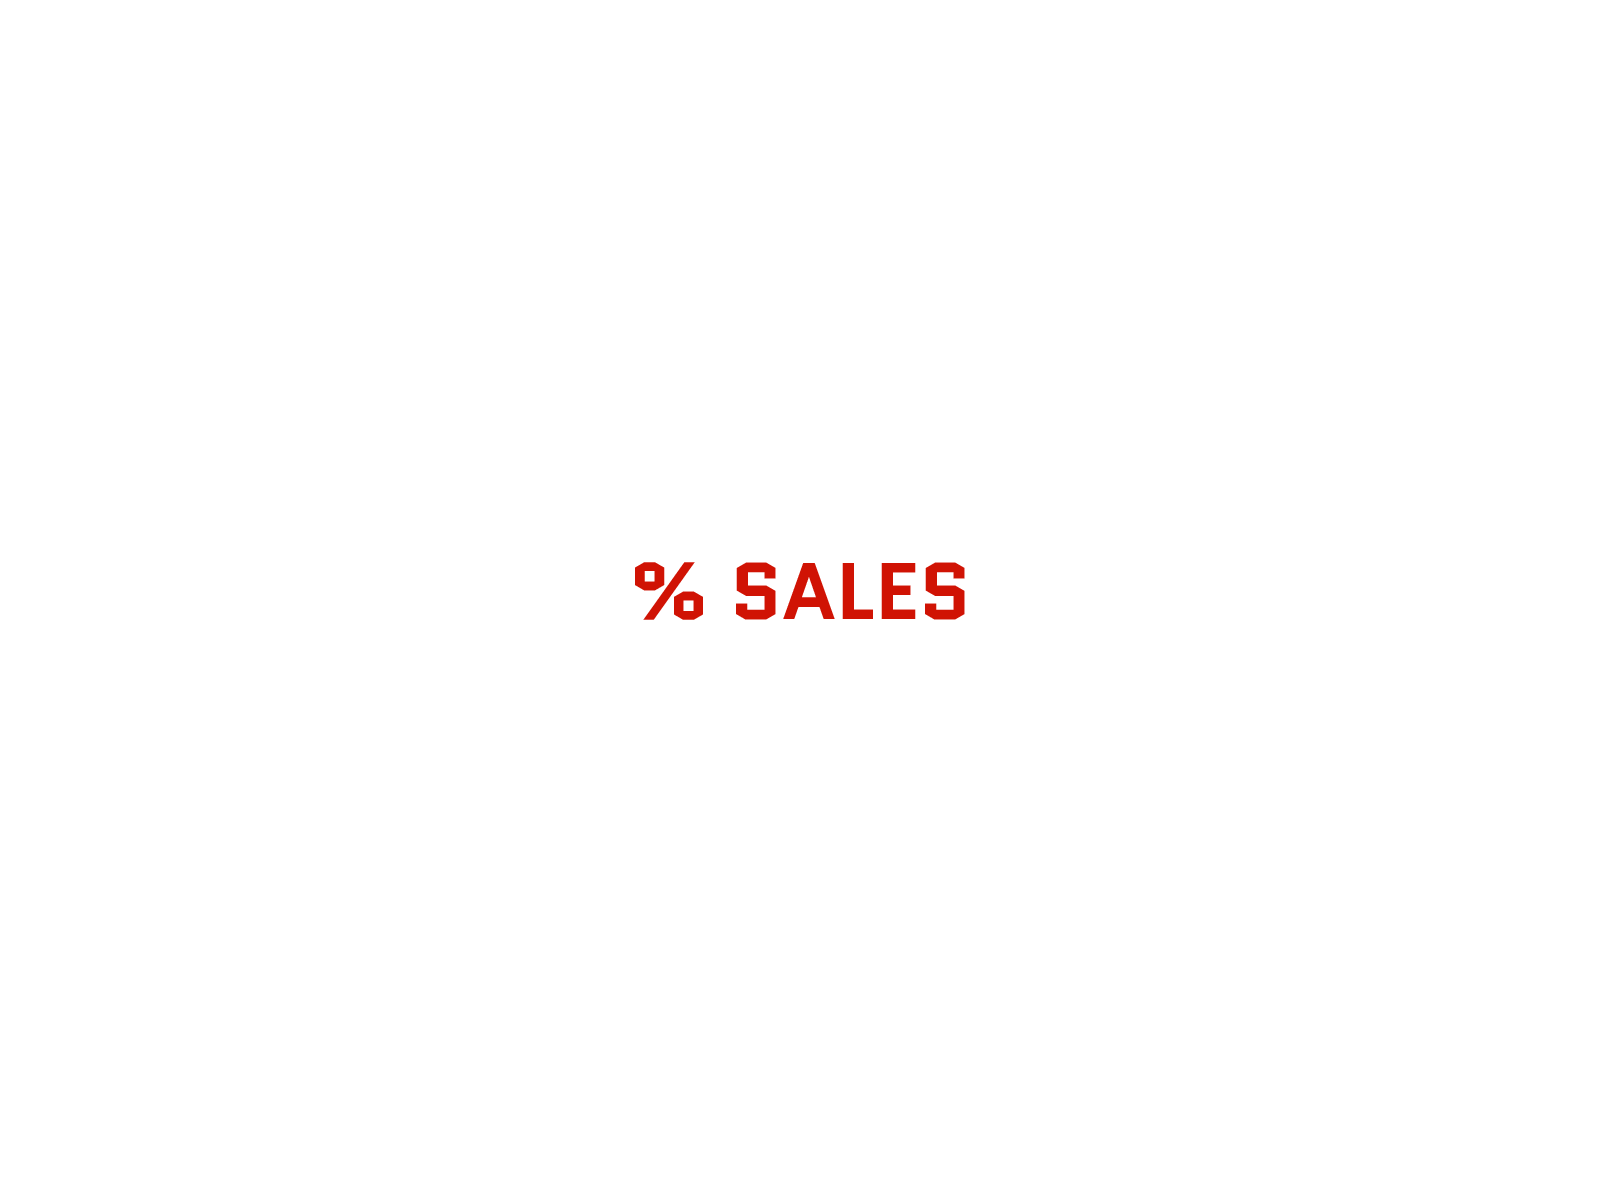 image of Sales